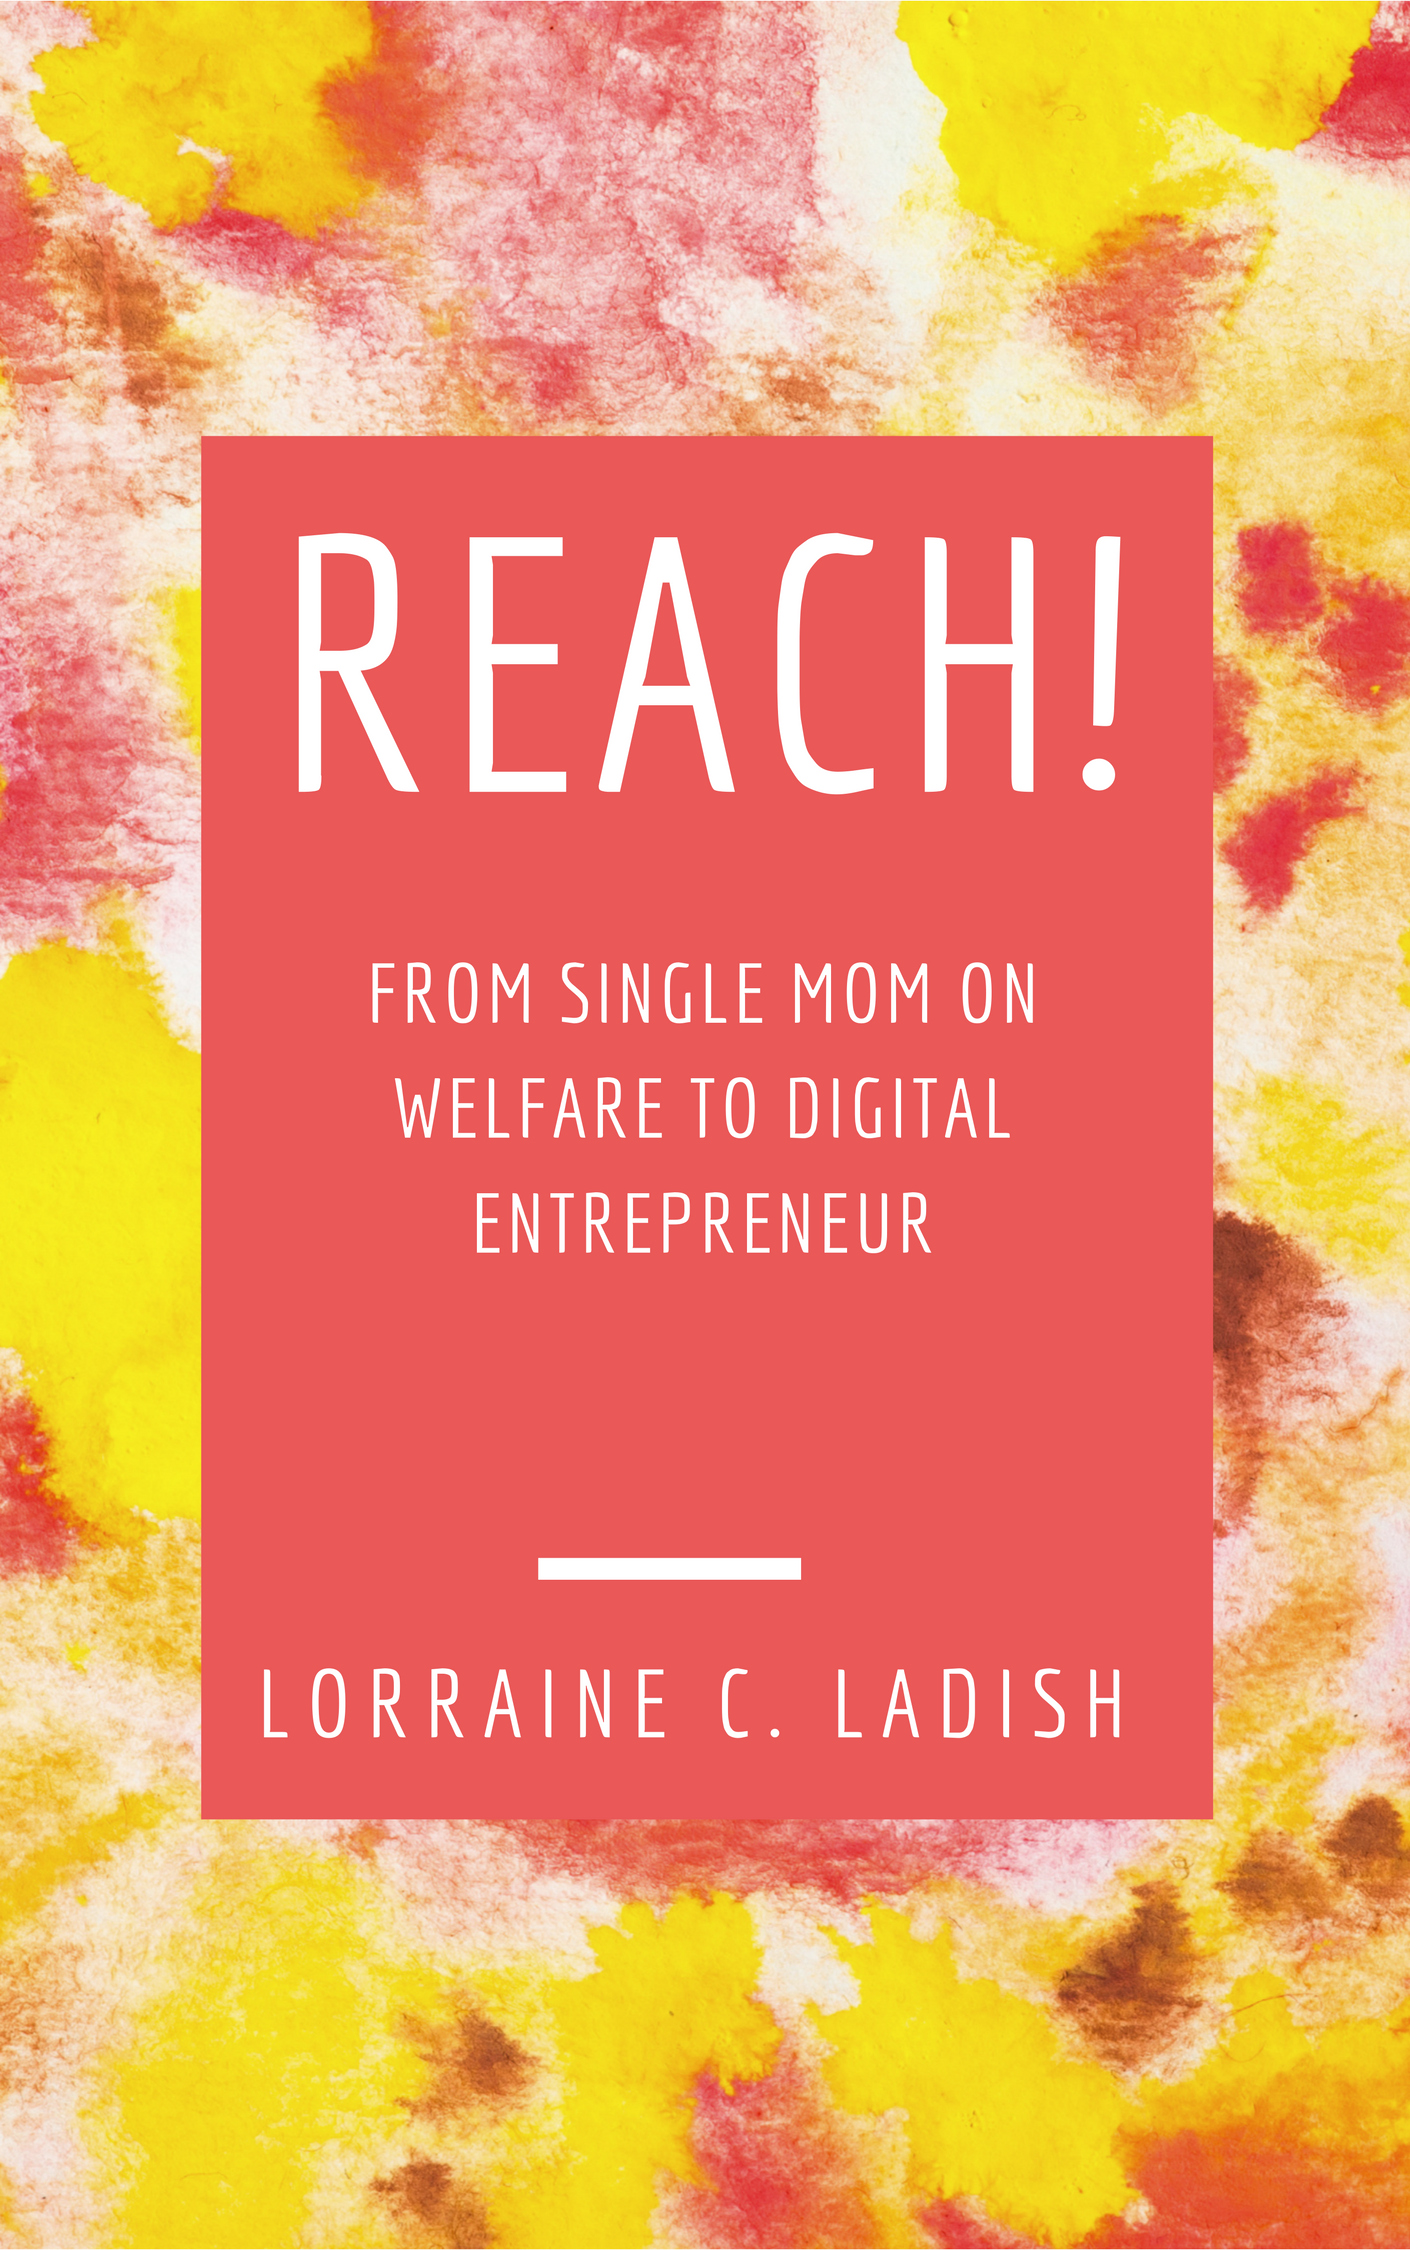 REACH! From single mom on foodstamps to digital entrepreneur